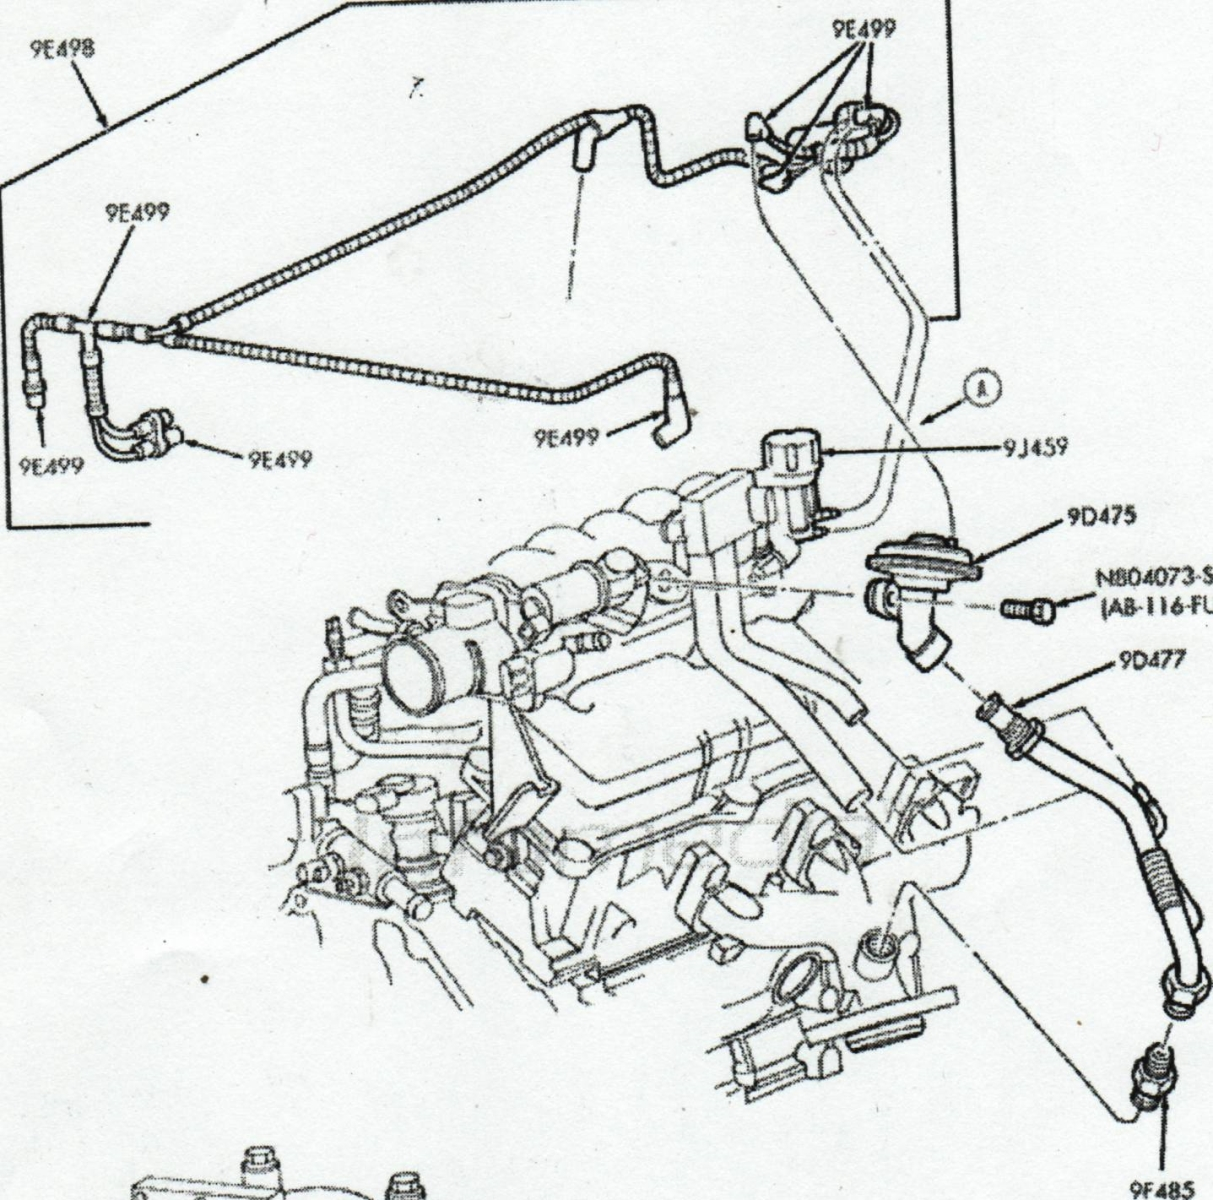 2007 mustang wiring diagram 2007 discover your wiring diagram 2006 f150 blower motor wiring diagram image about